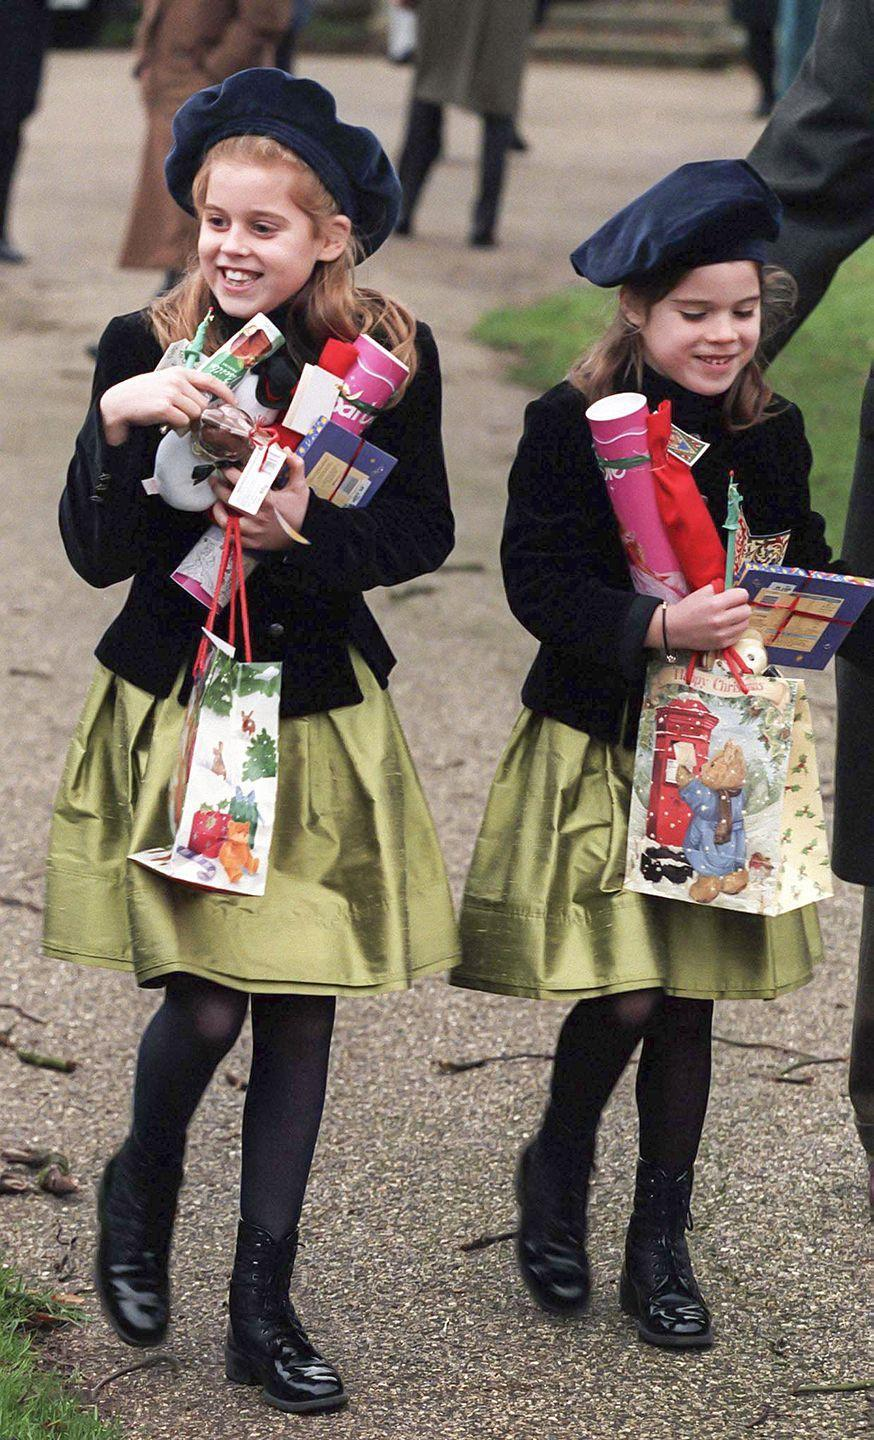 <p>Princess Beatrice and Princess Eugenie at the annual Christmas Day service at Sandringham Church, carrying their presents.</p>